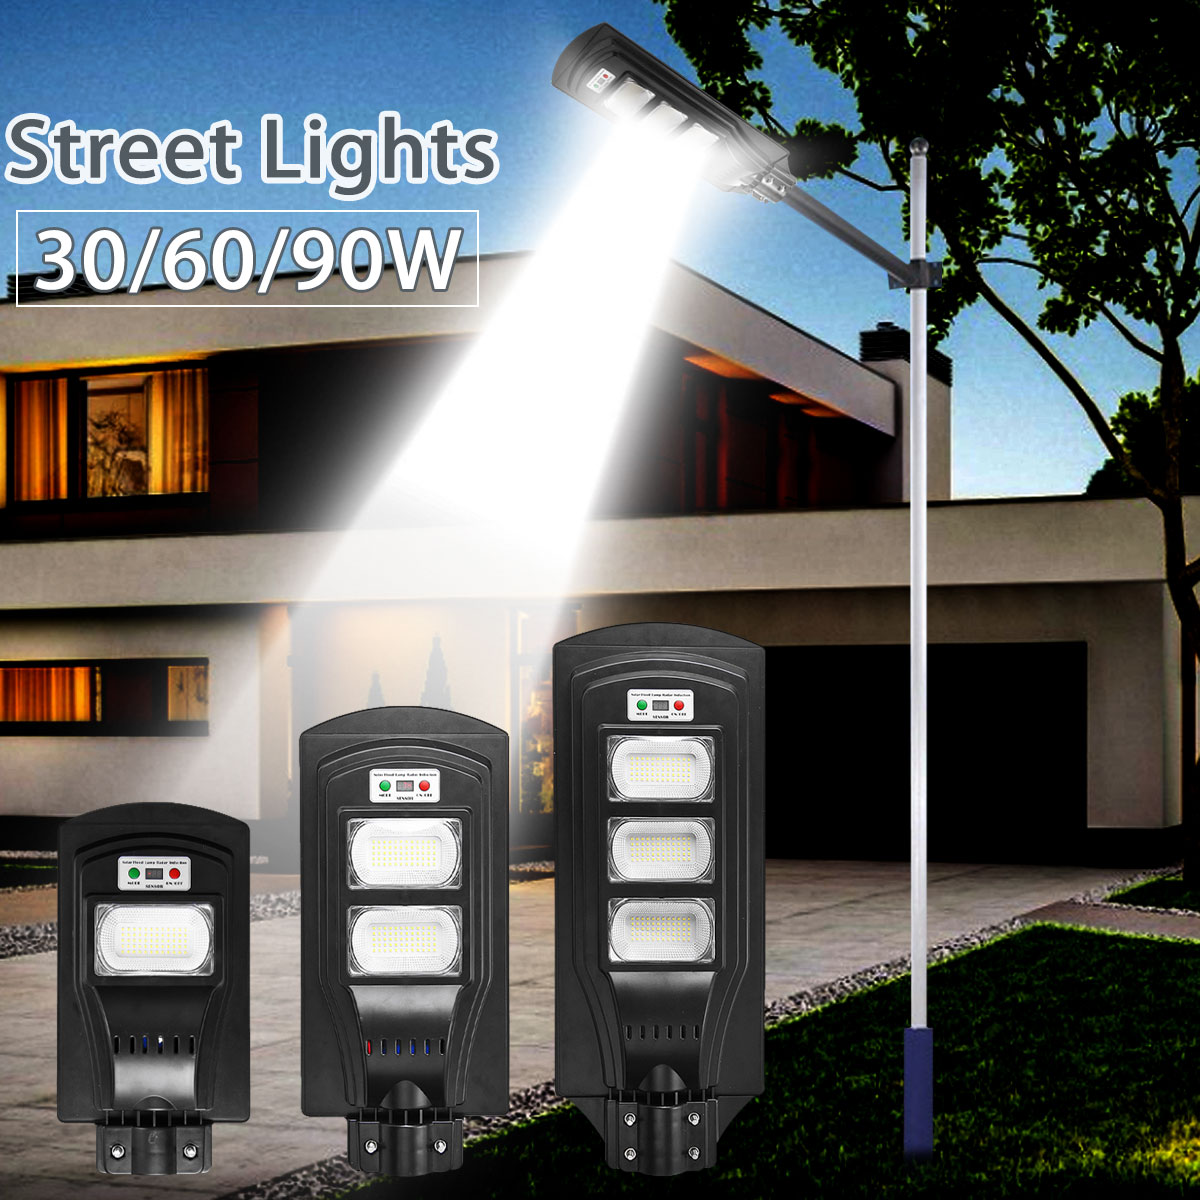 30/60/90W LED Wall Lamp IP66 Led Solar Street Light Radar Motion 2 In 1 Constantly Bright Induction Solar Sensor Remote Control